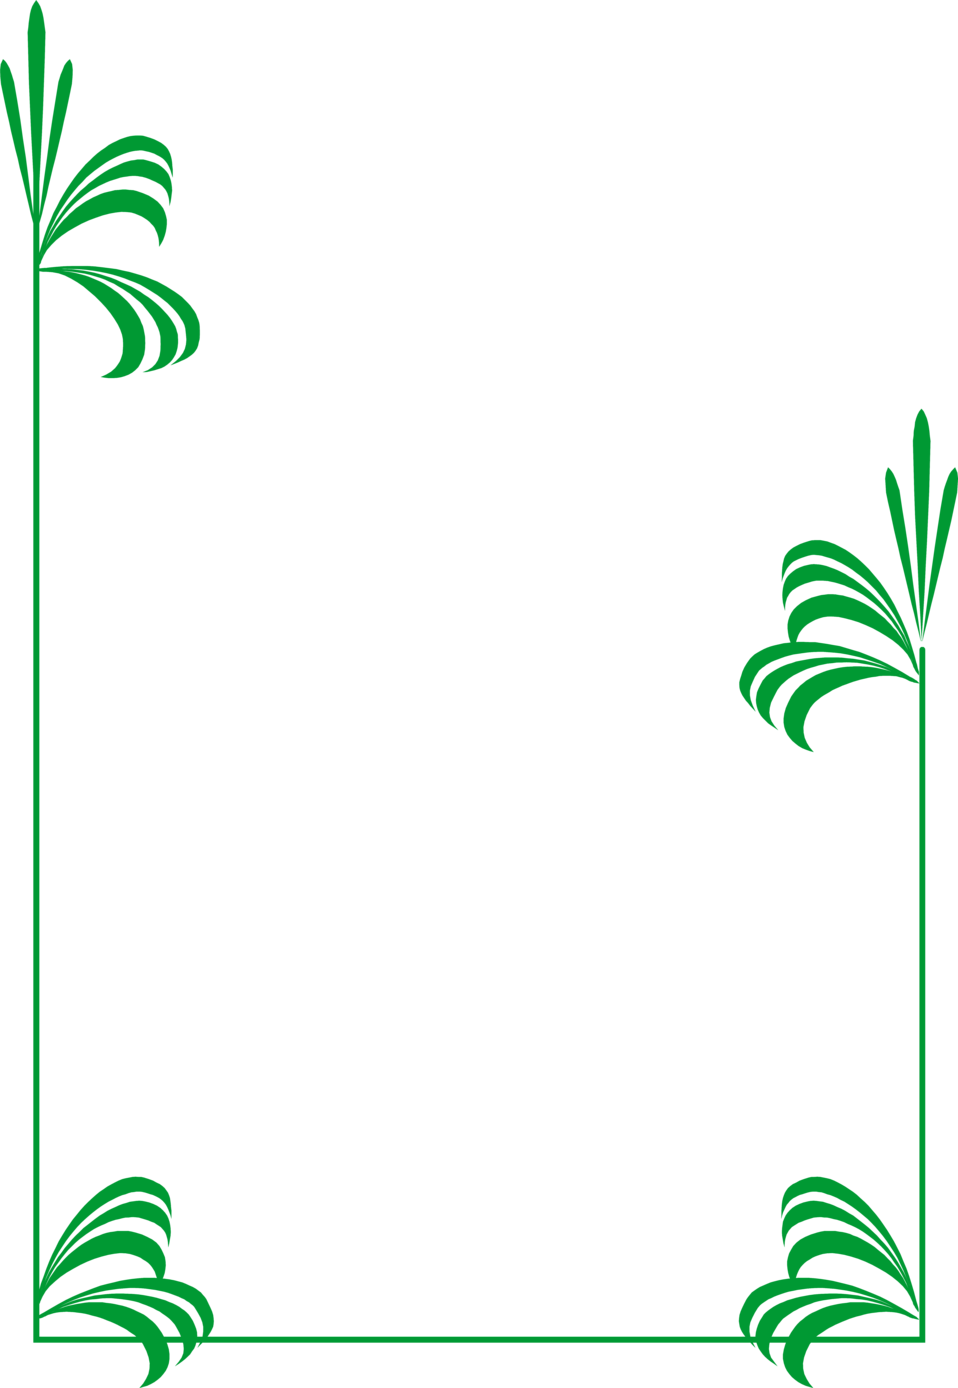 Free stock photos illustration of a blank frame border with - Illustration Of A Blank Frame Border With Green Leaves Free Stock Photo